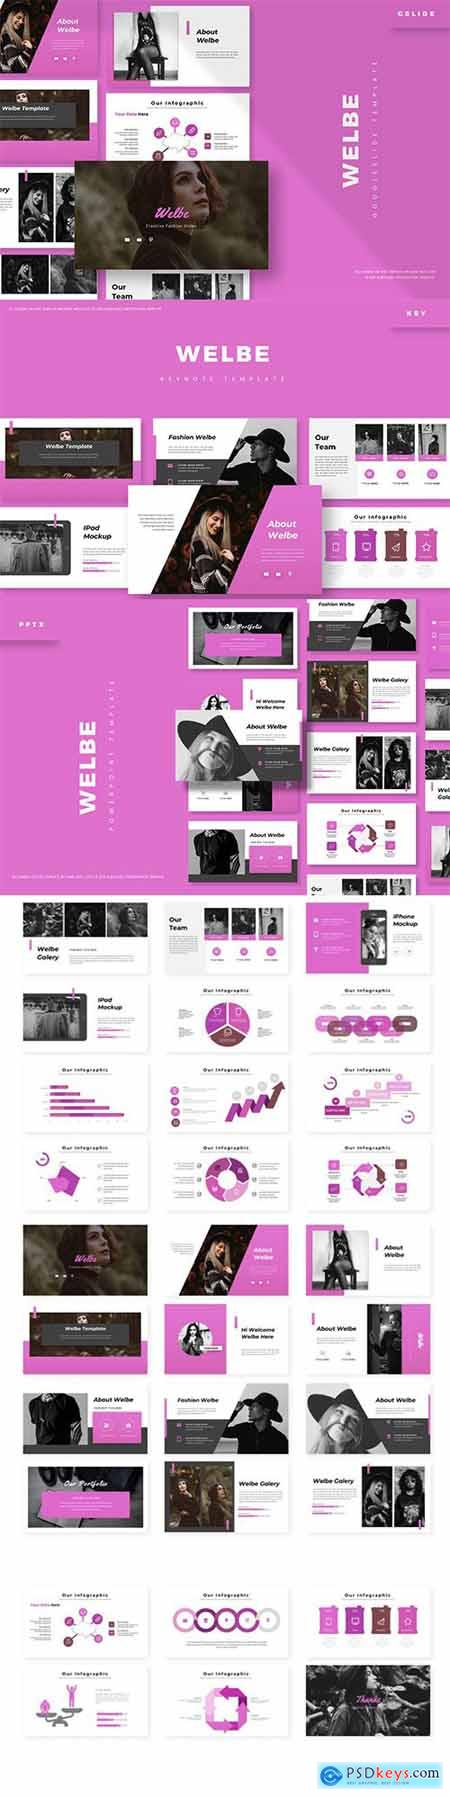 Welbe - Powerpoint, Keynote and Google Slides Templates